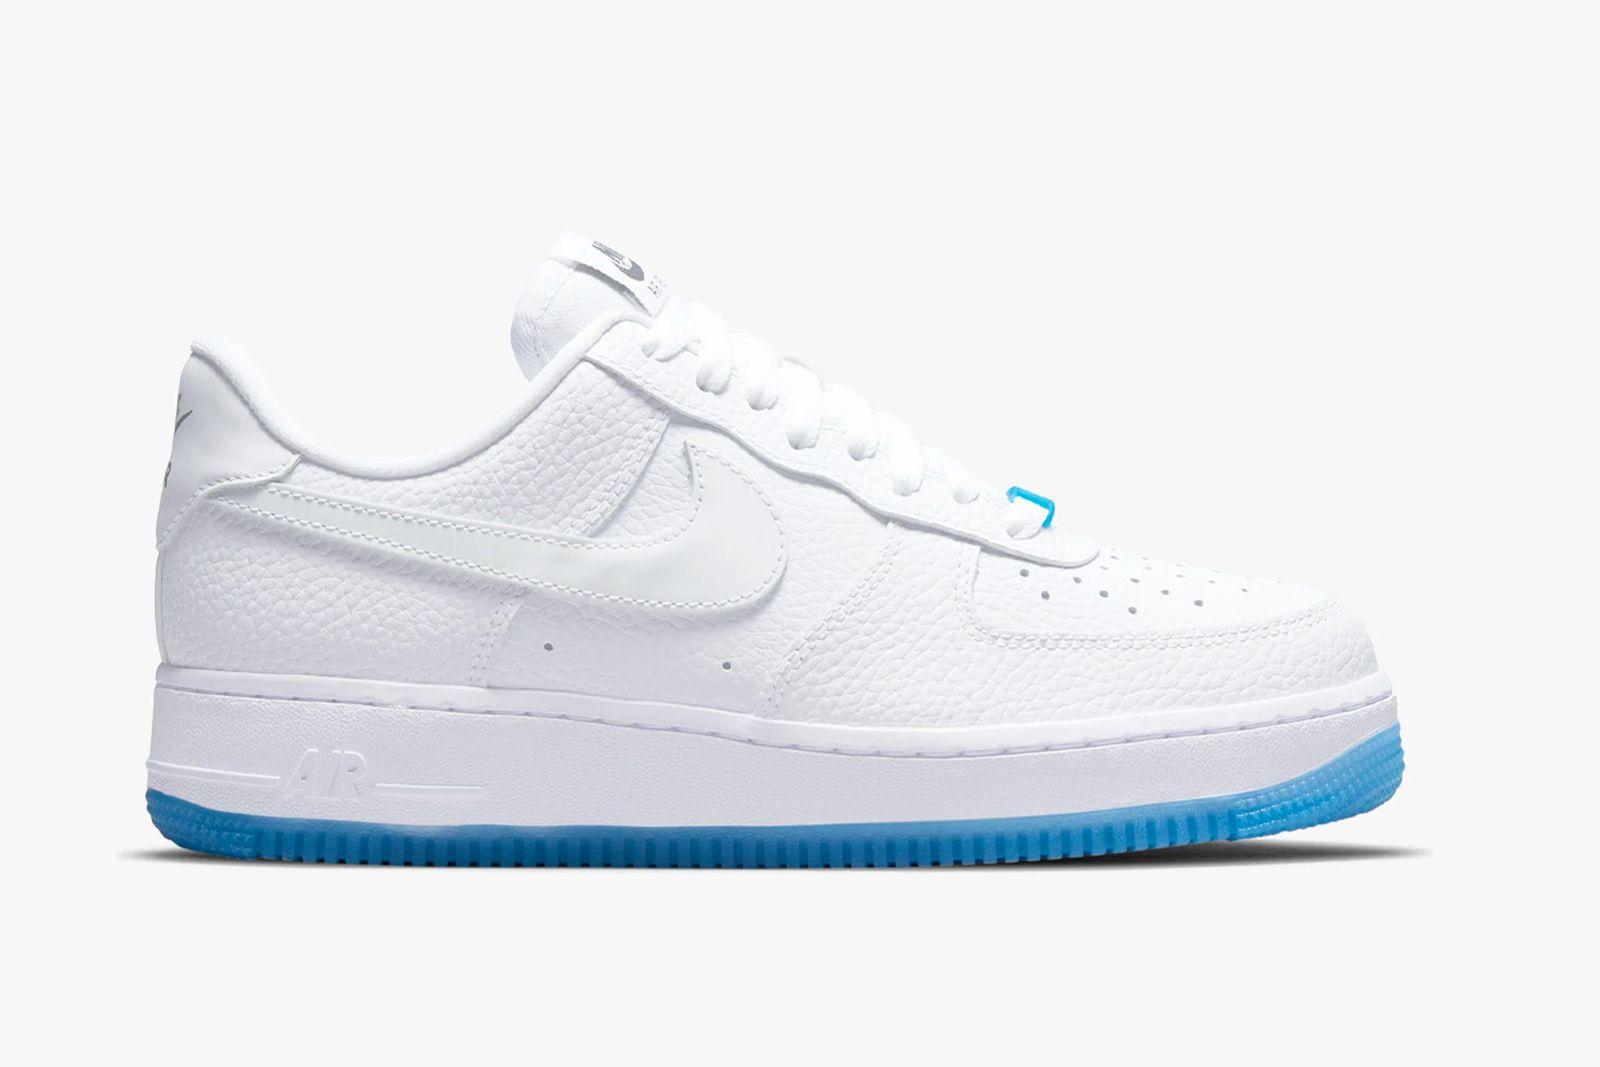 nike-air-force-1-air-force-1-07-lx-release-date-info-price-02